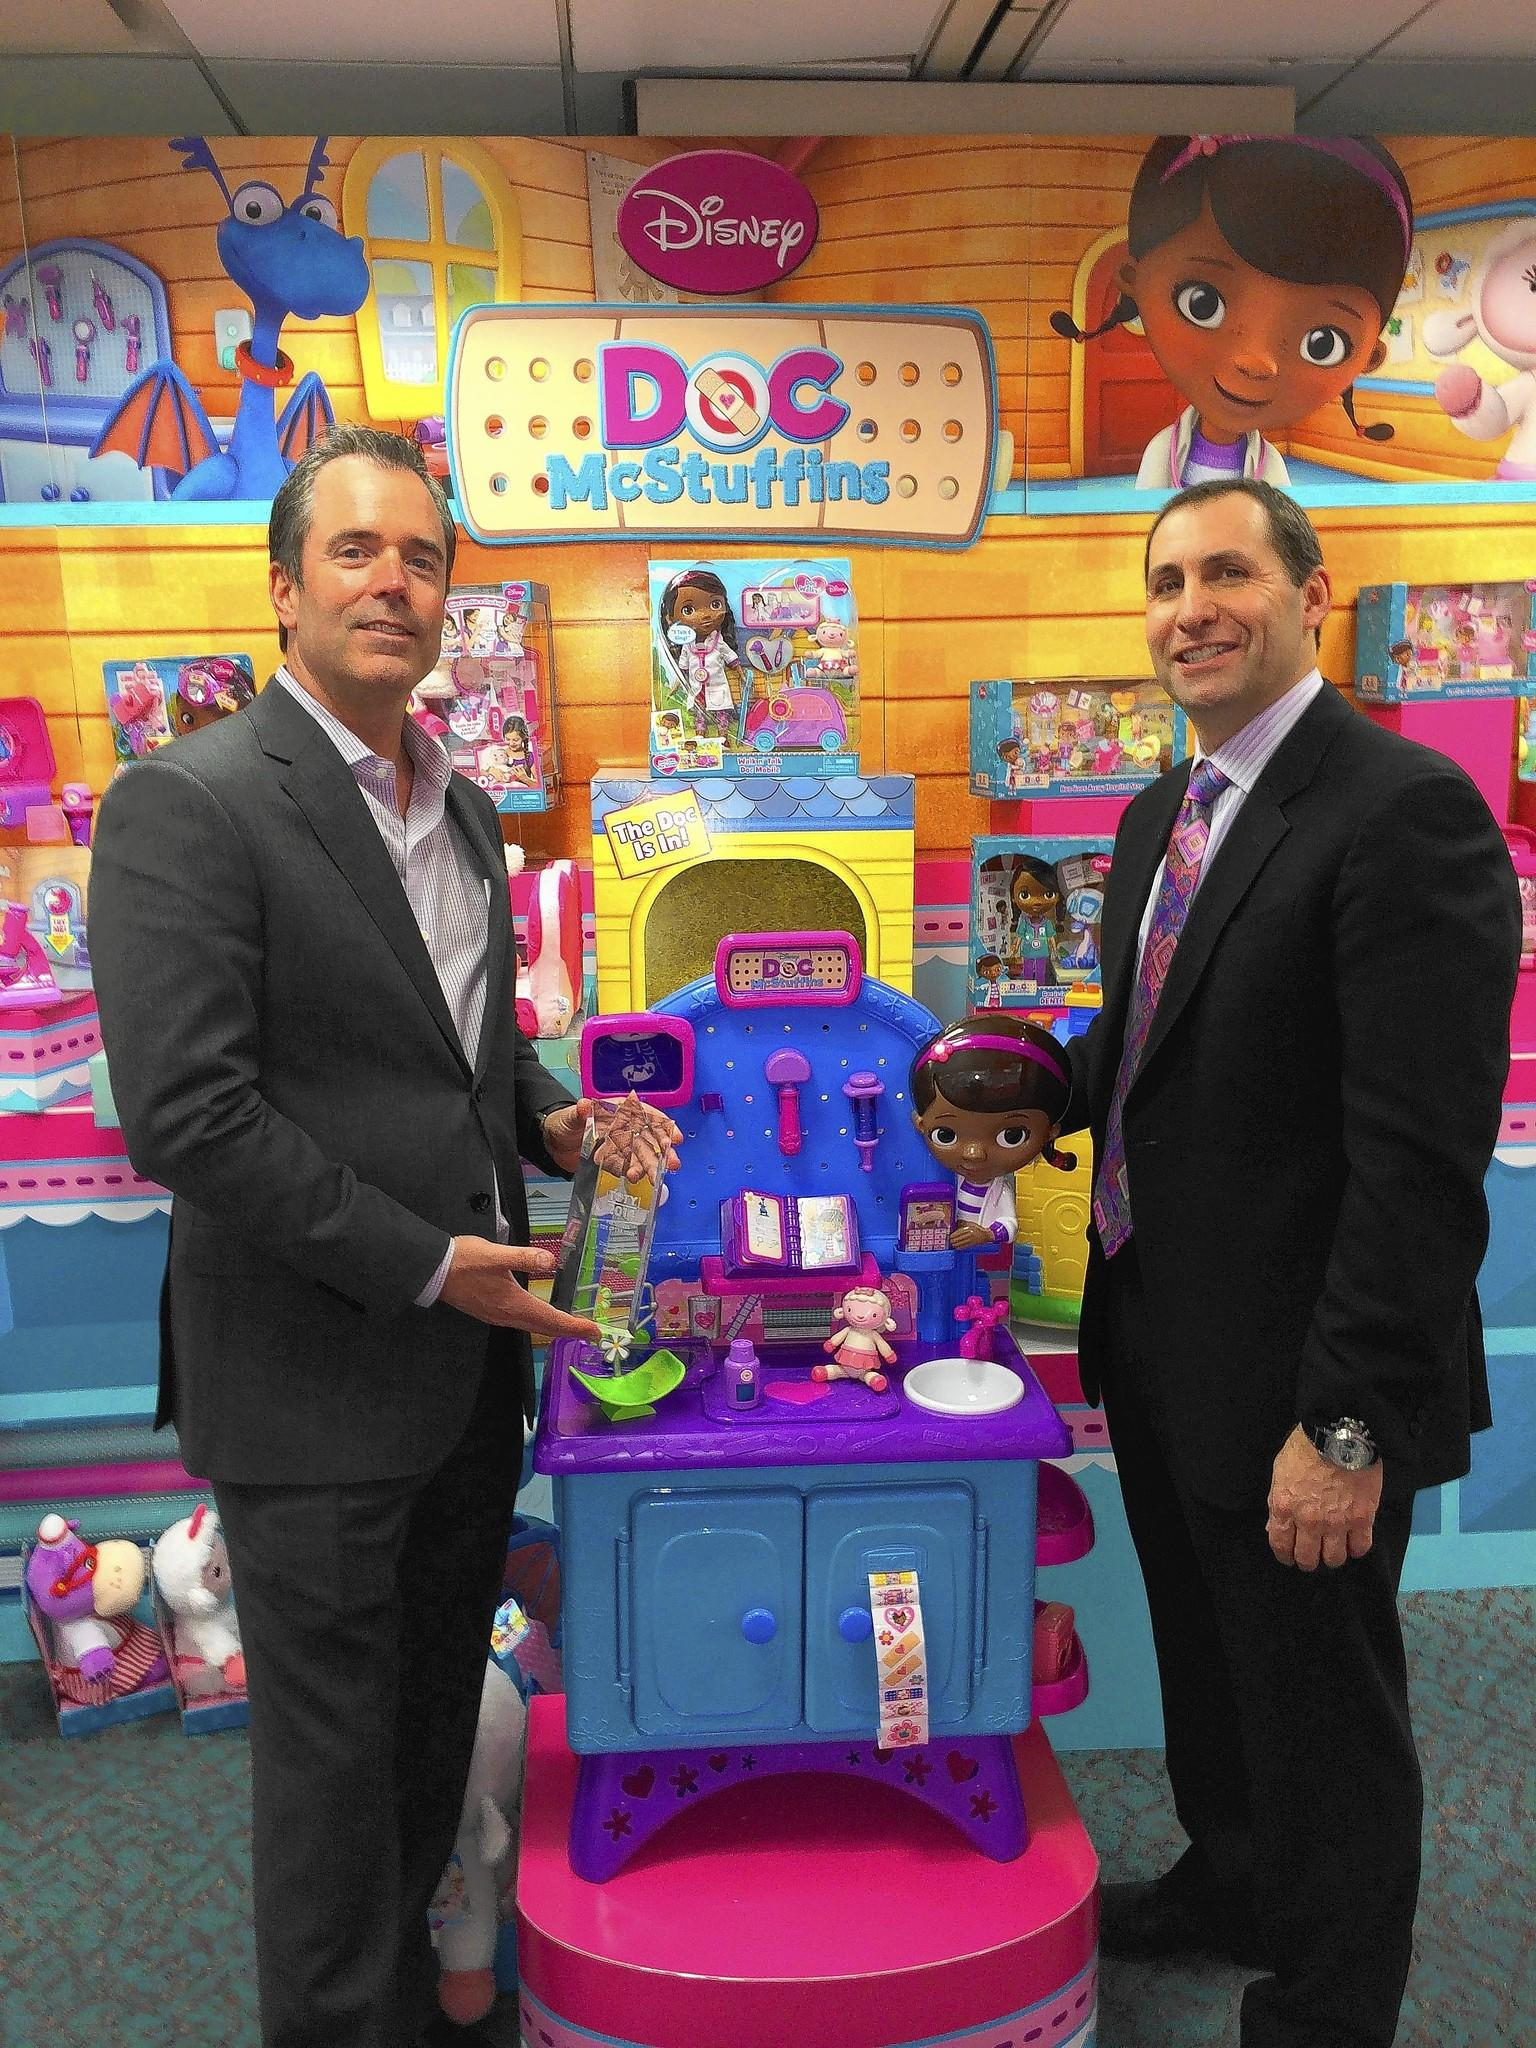 Just Play Toys : Toy company from south florida wins top awards for doc